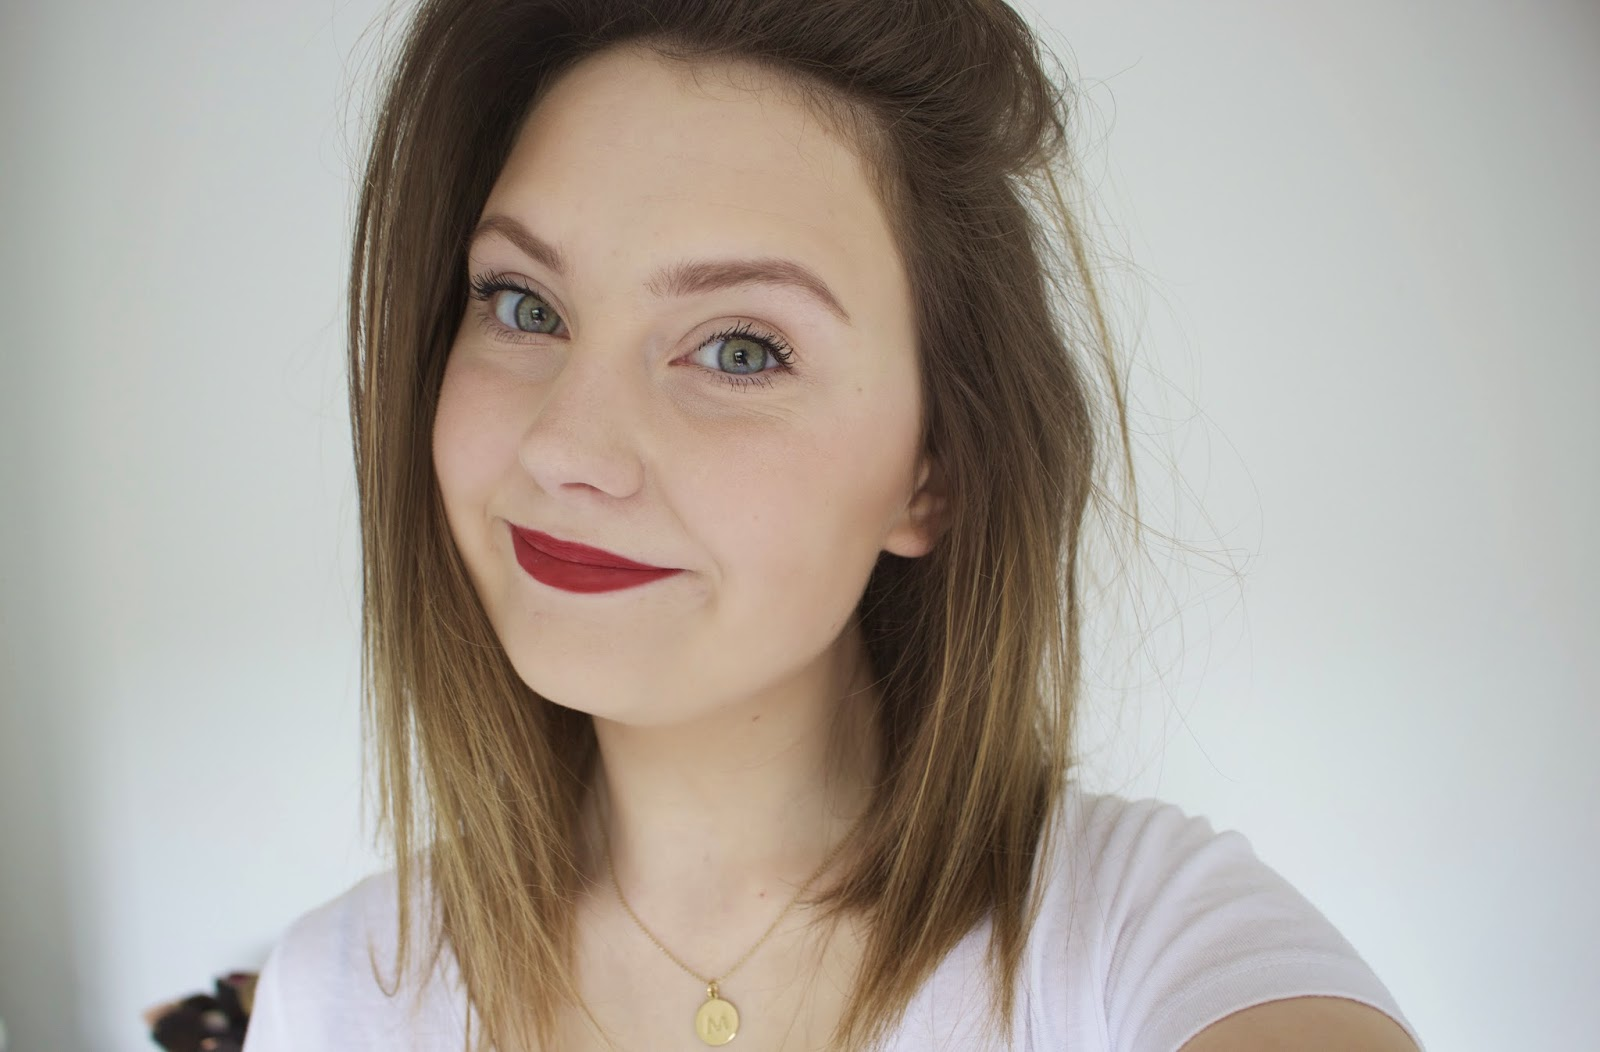 Charlotte Tilbury Lip Cheat in Crazy in Love